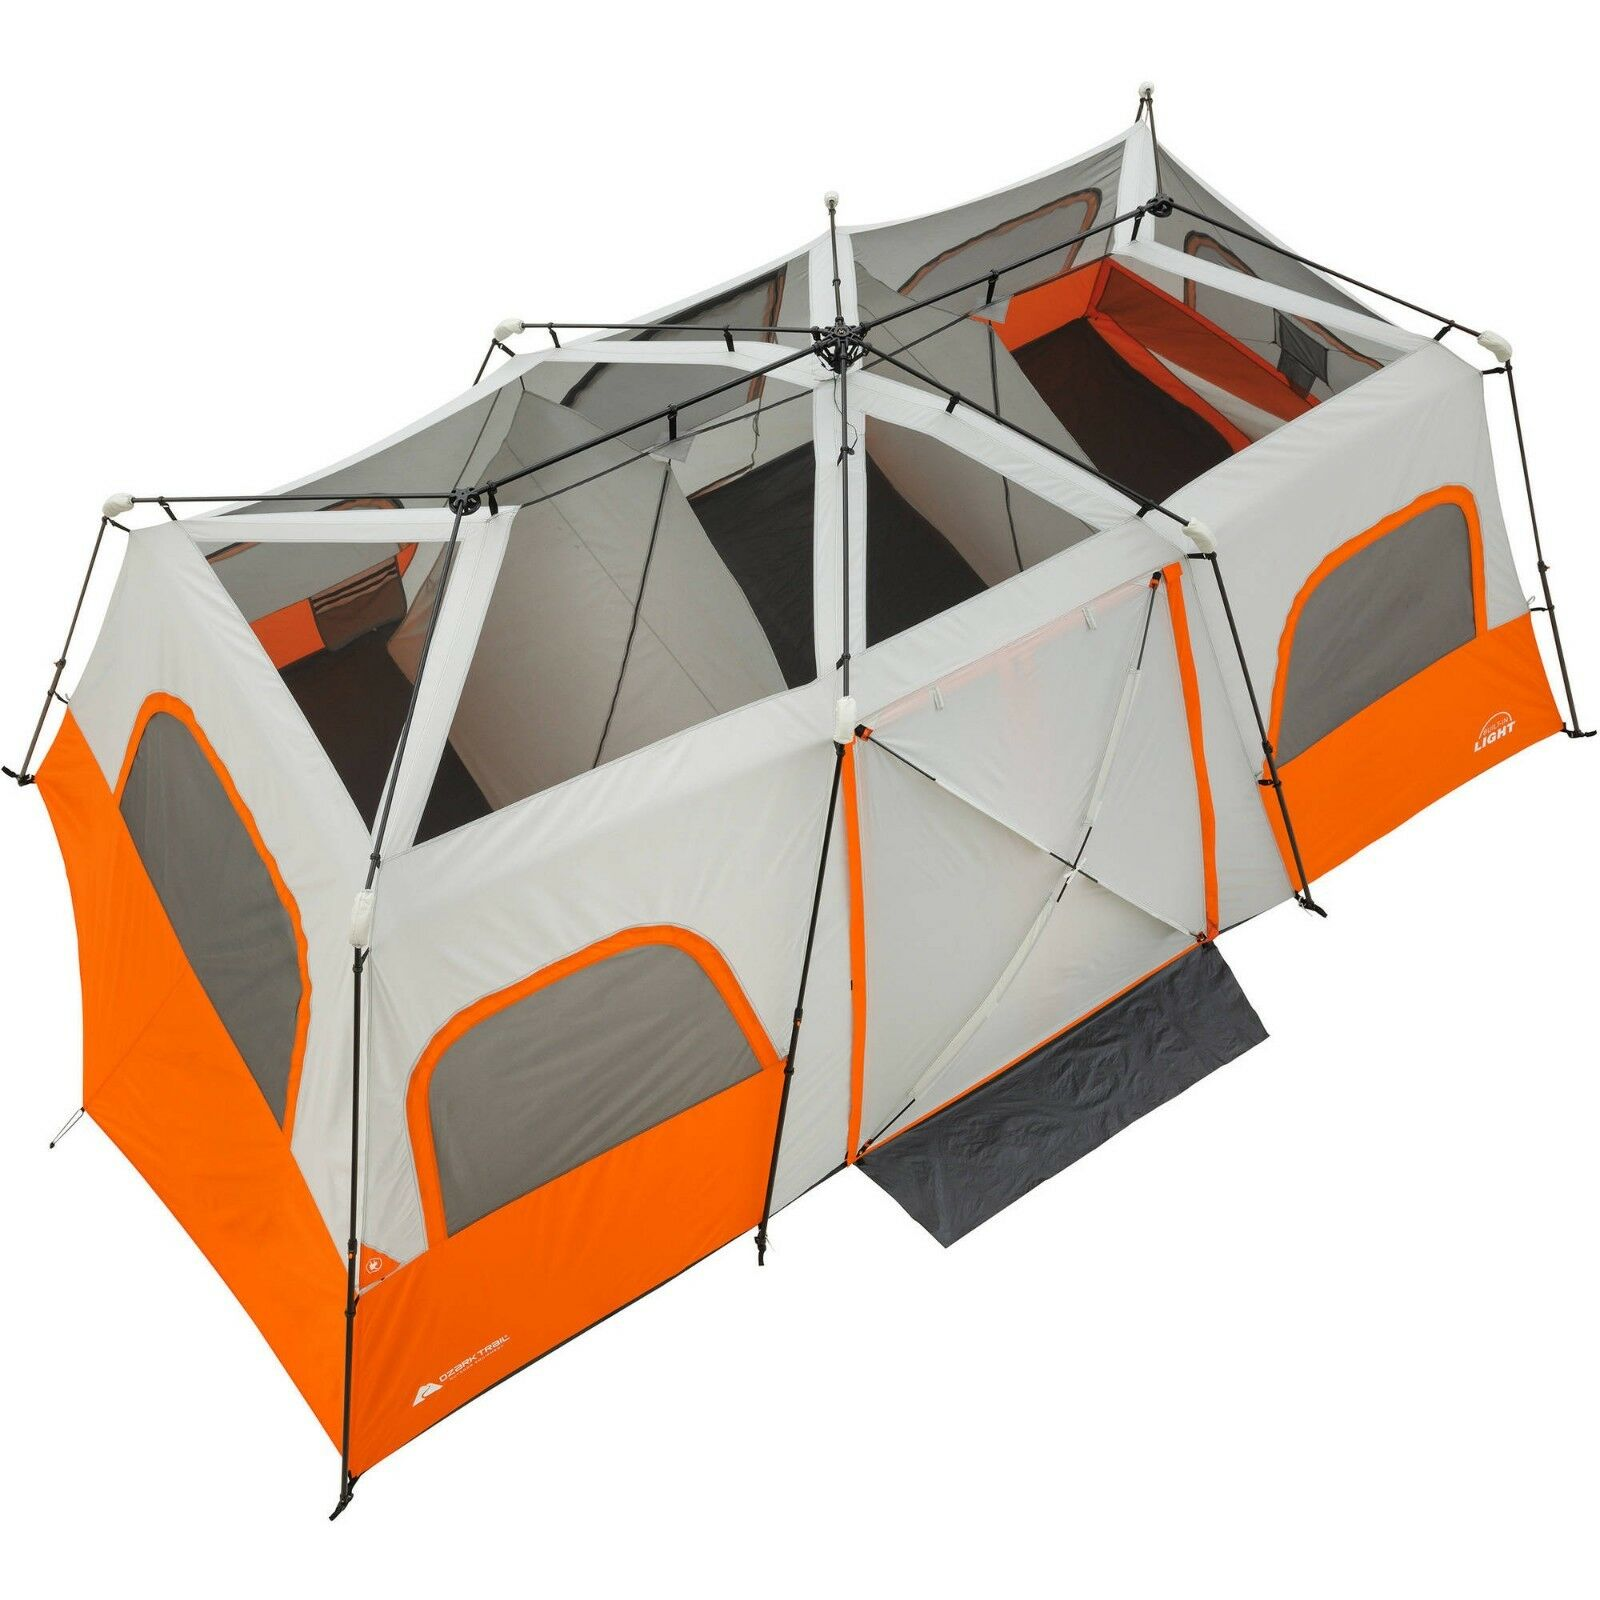 Cabin Tent Ozark Trail 12 Person Camping Family Outdoor Instant Tents 3 Room